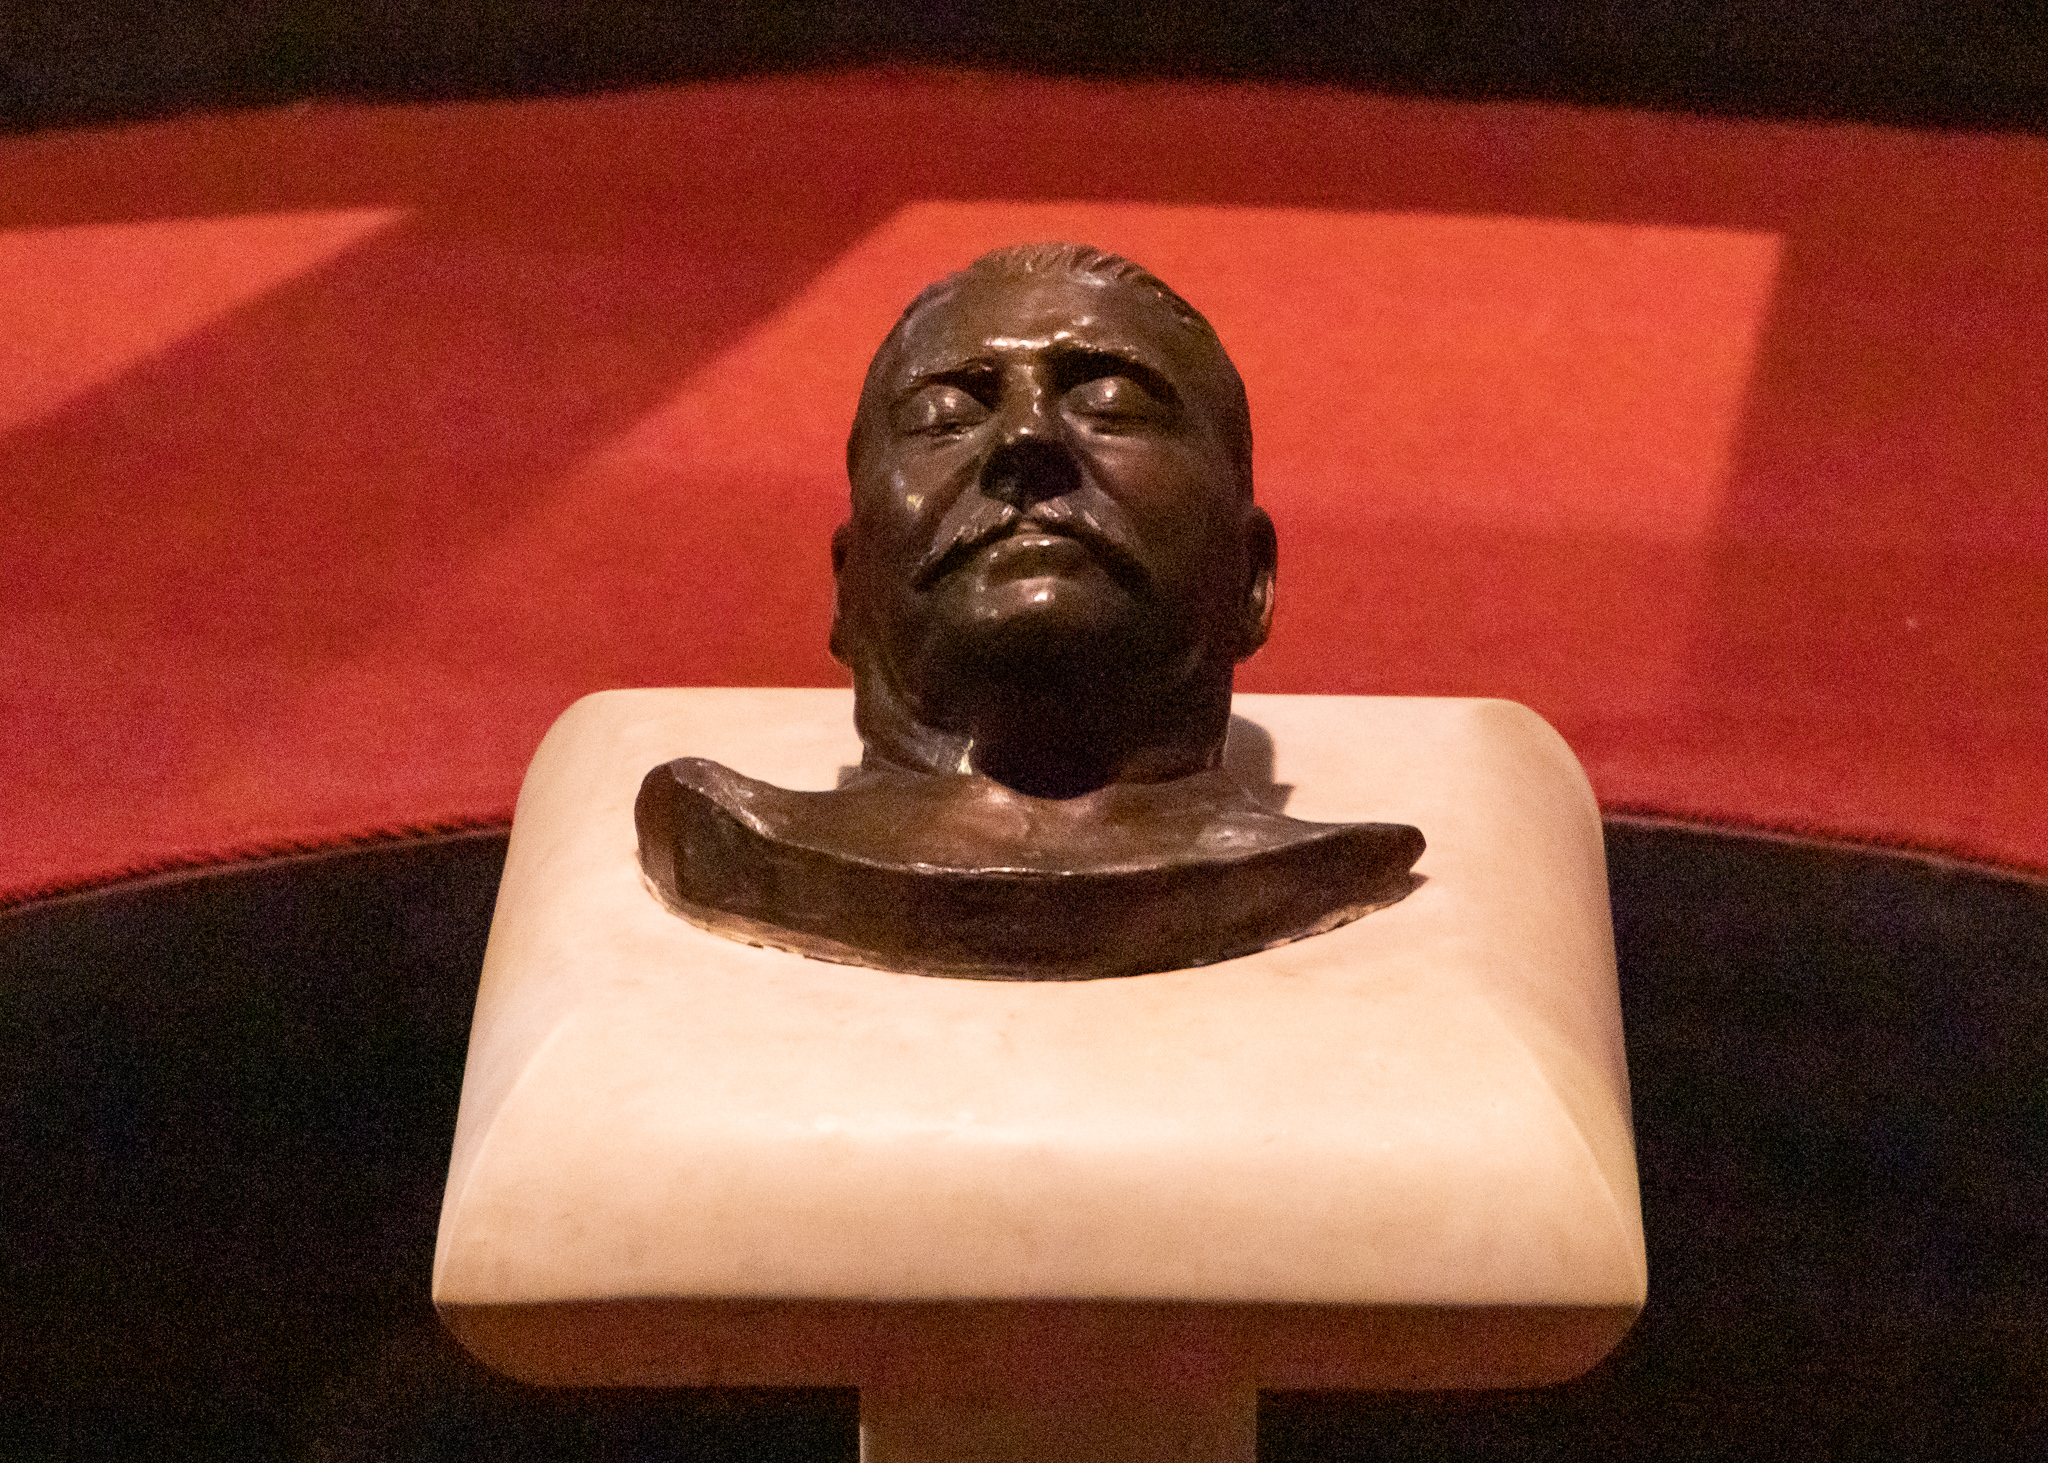 The death mask looks a bit like chocolate in this picture!